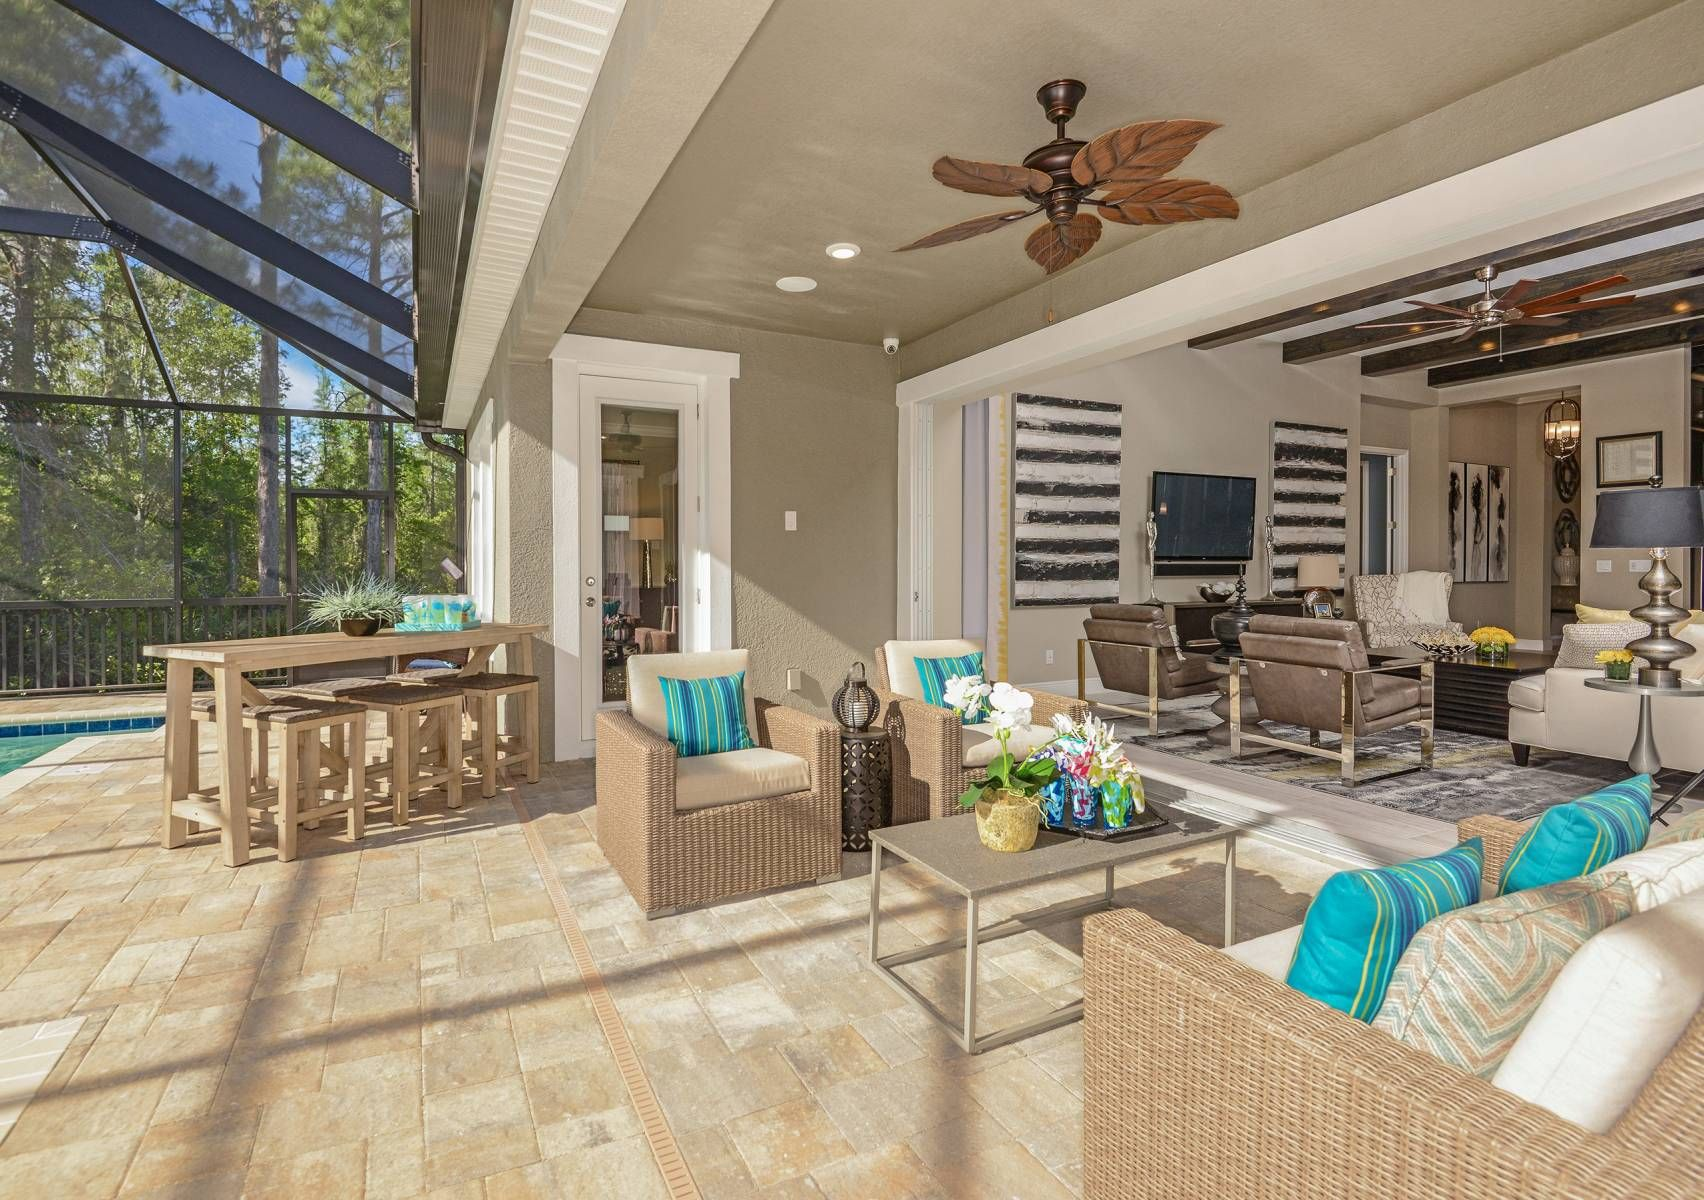 The Covered Patio And Lanai In Our Beach Park New Home In Tampa Gives Many Options For Indoor